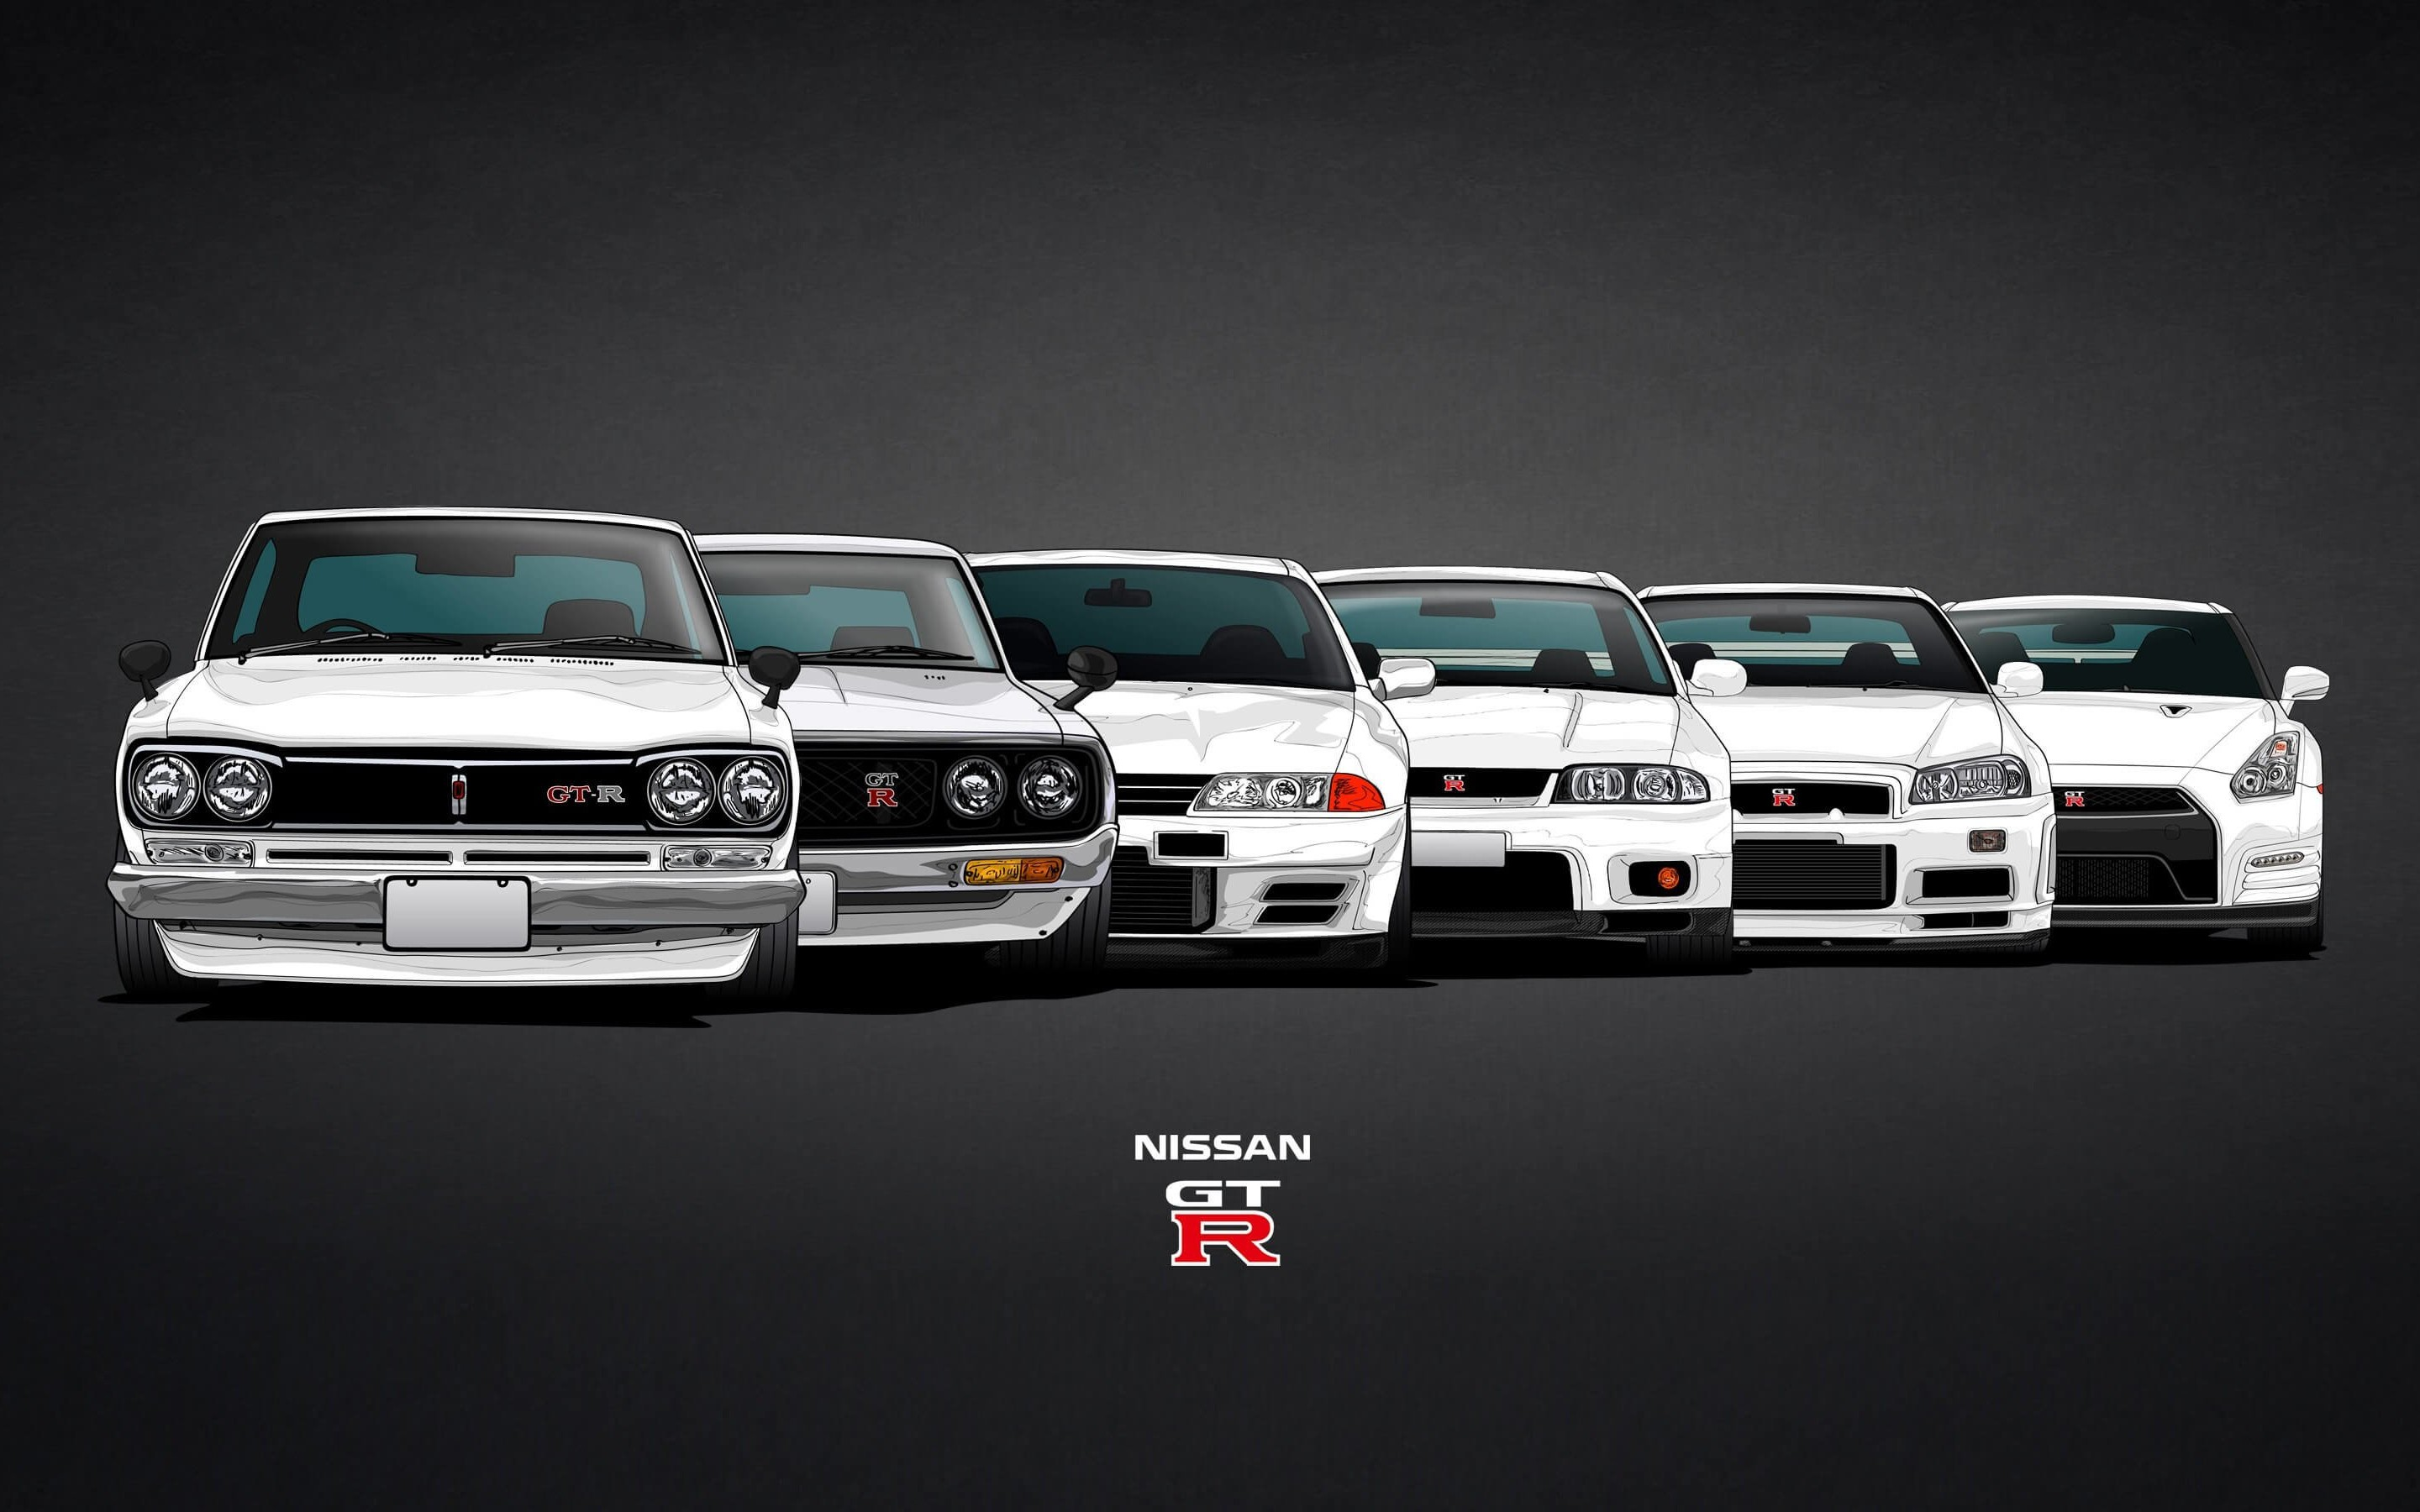 Nissan Skyline GT-R Evolution Wallpaper for Desktop 2880x1800